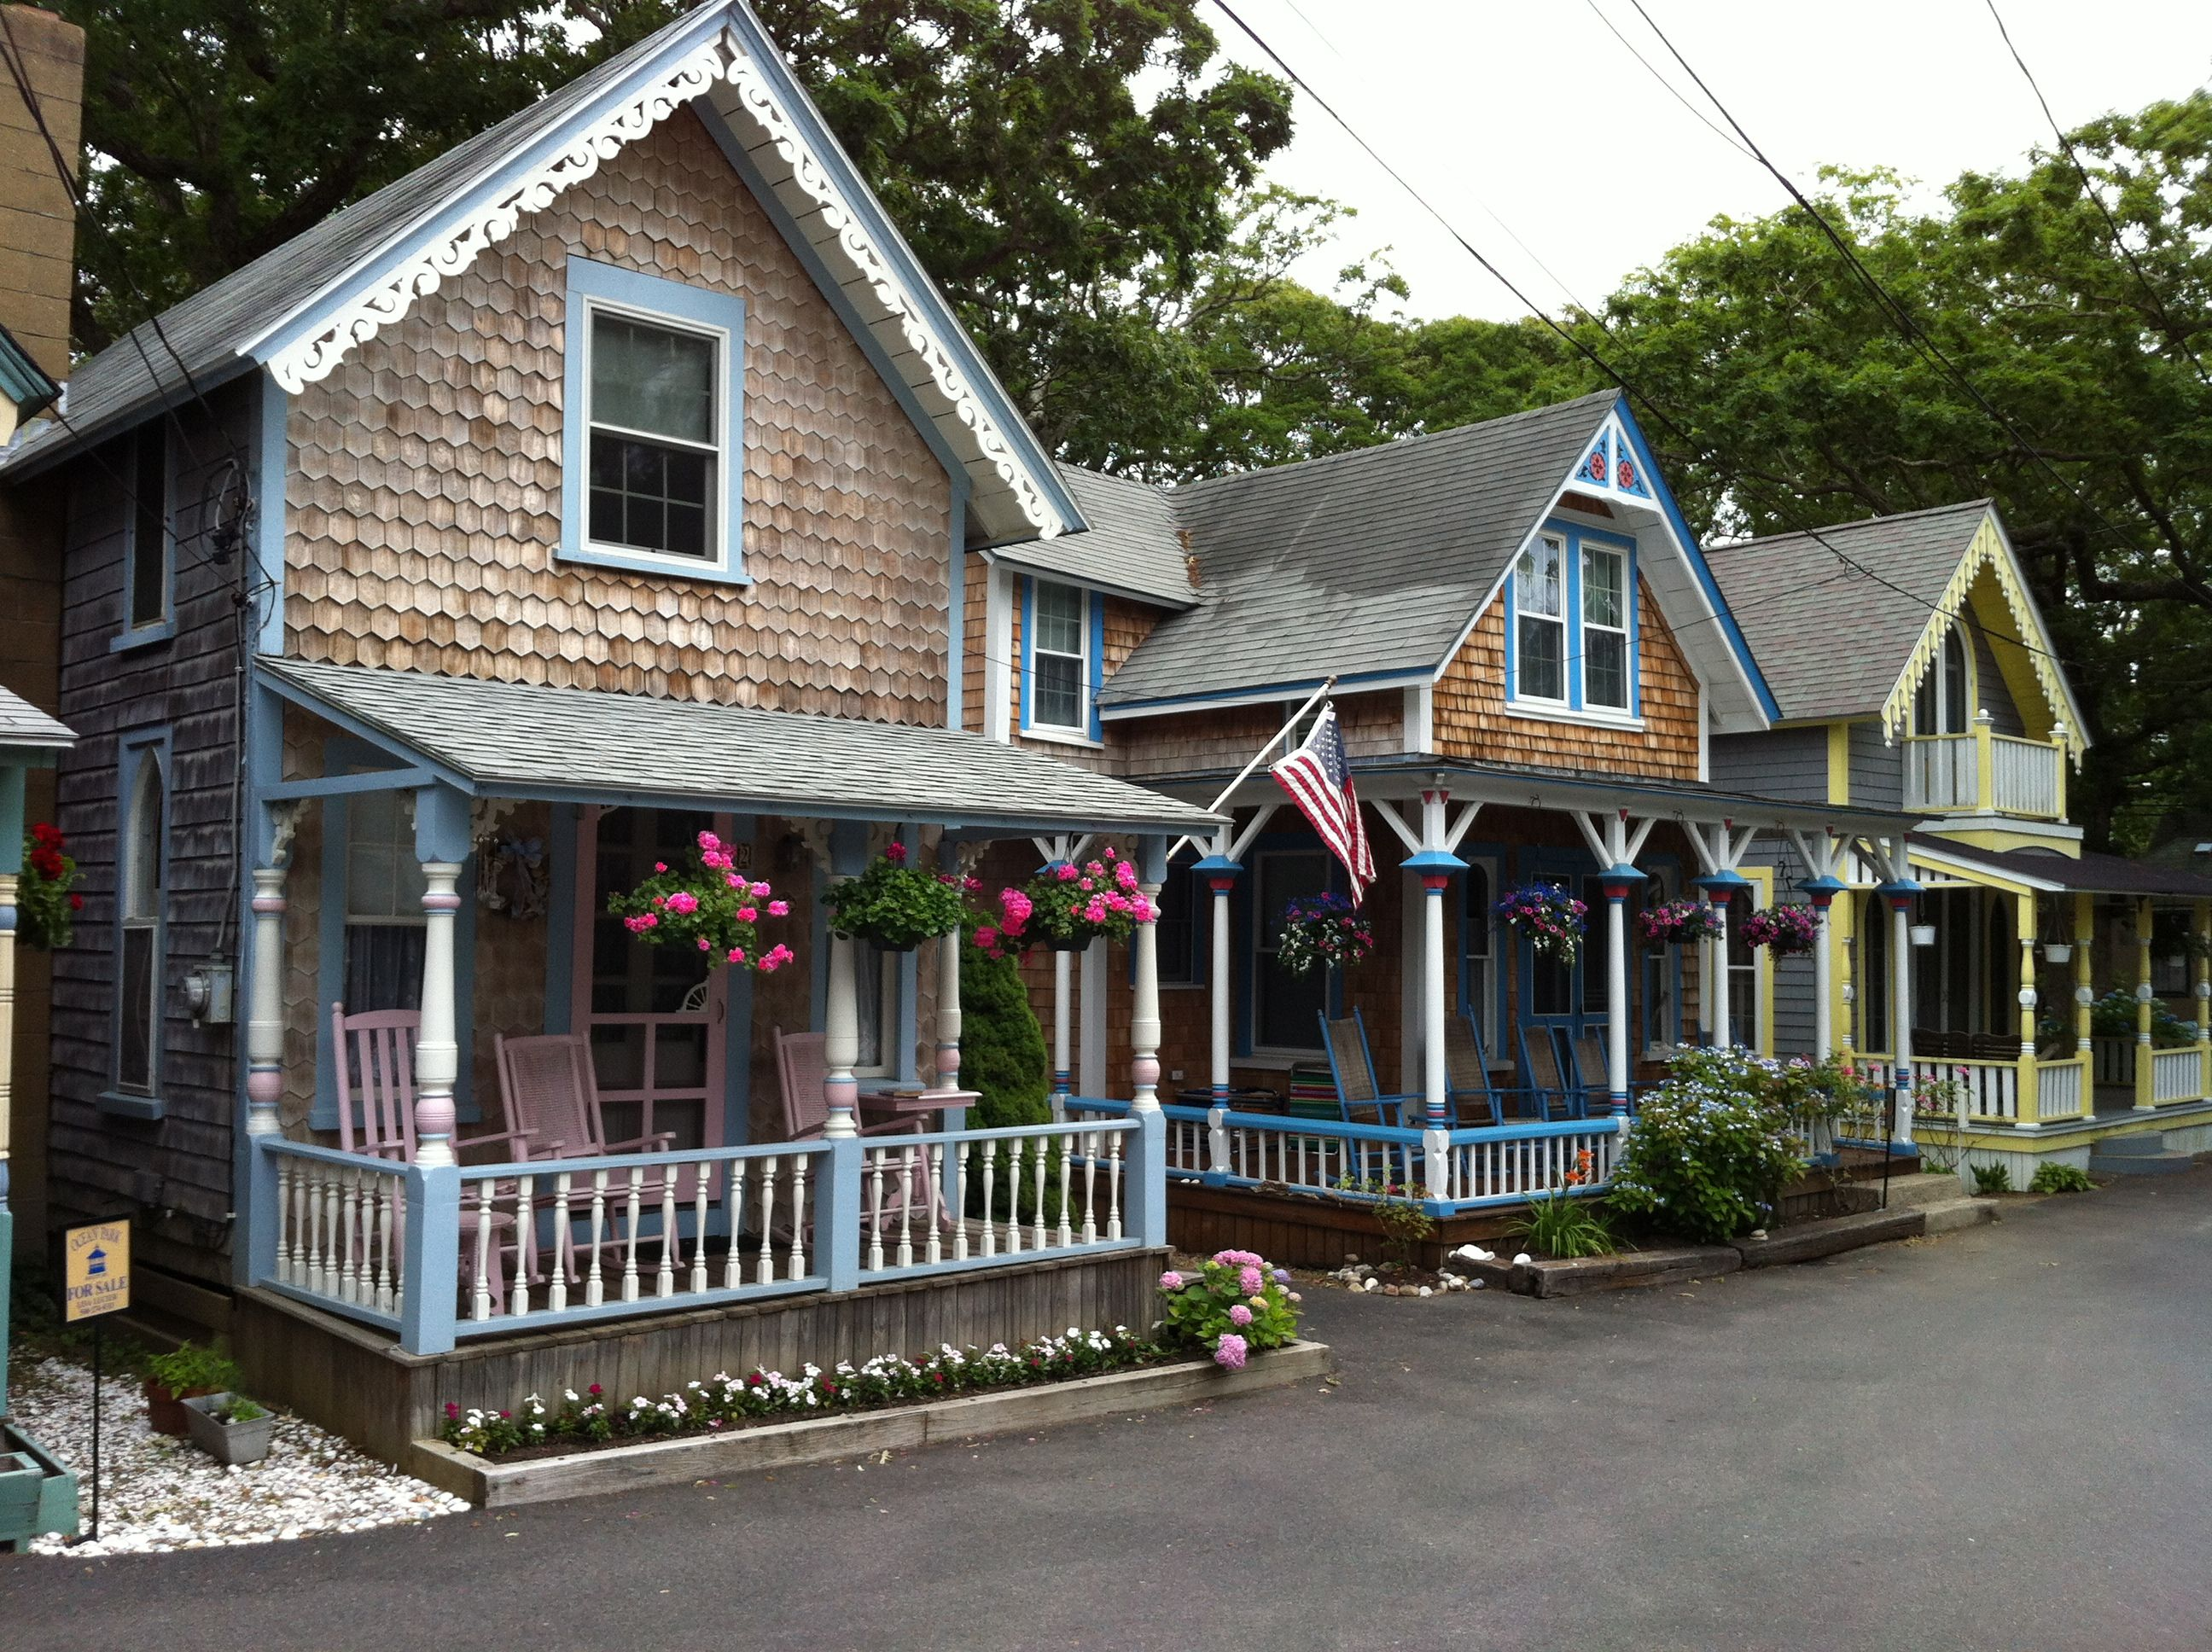 across in an for house thebookofsummer the available sconset pin awesome cottages and nantucket fabulous bar from cottage summer historicalfiction rent piano